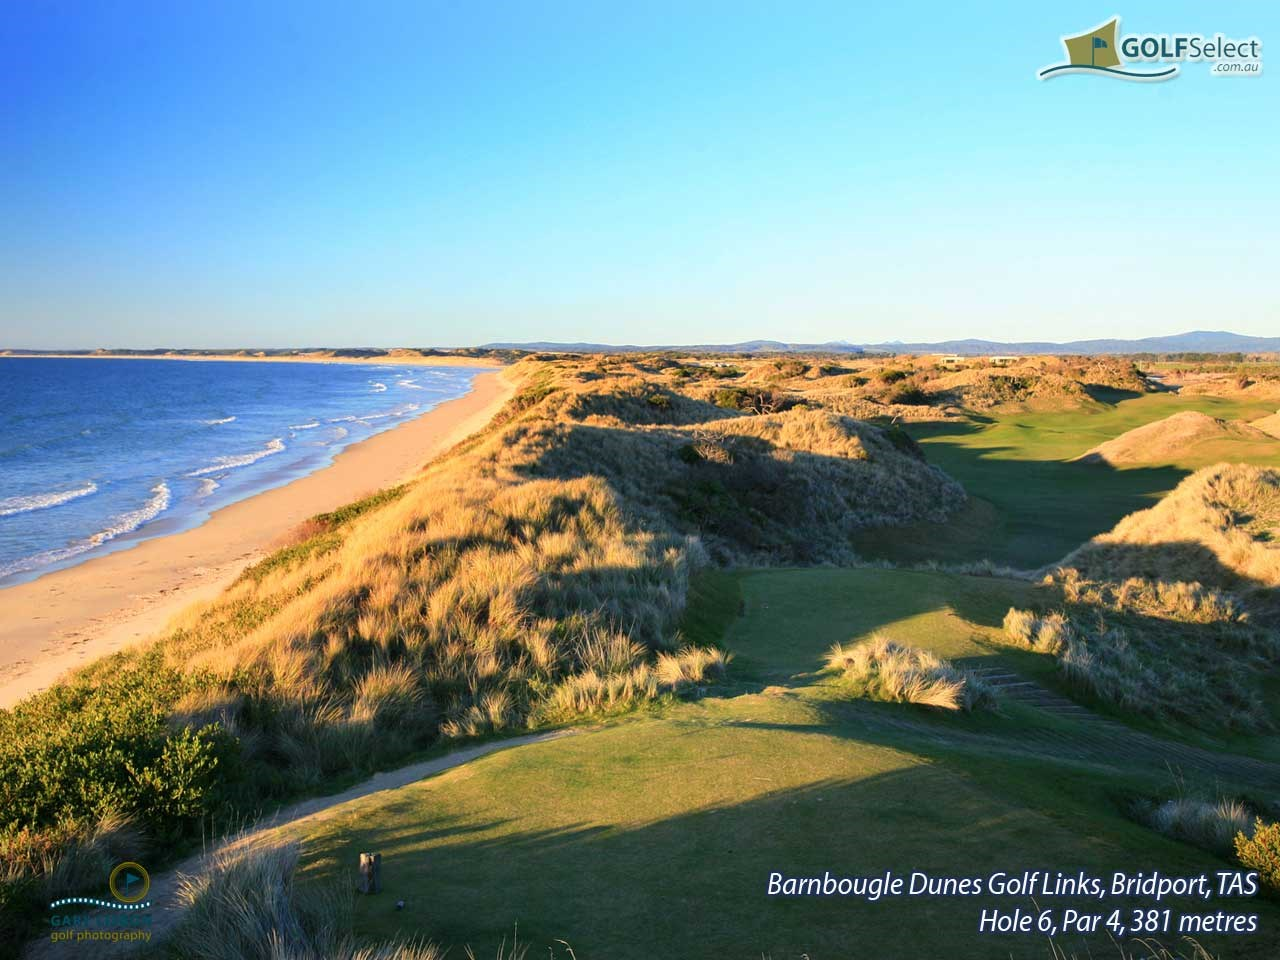 Barnbougle Dunes Golf Links Hole 6, Par 4, 381 metres